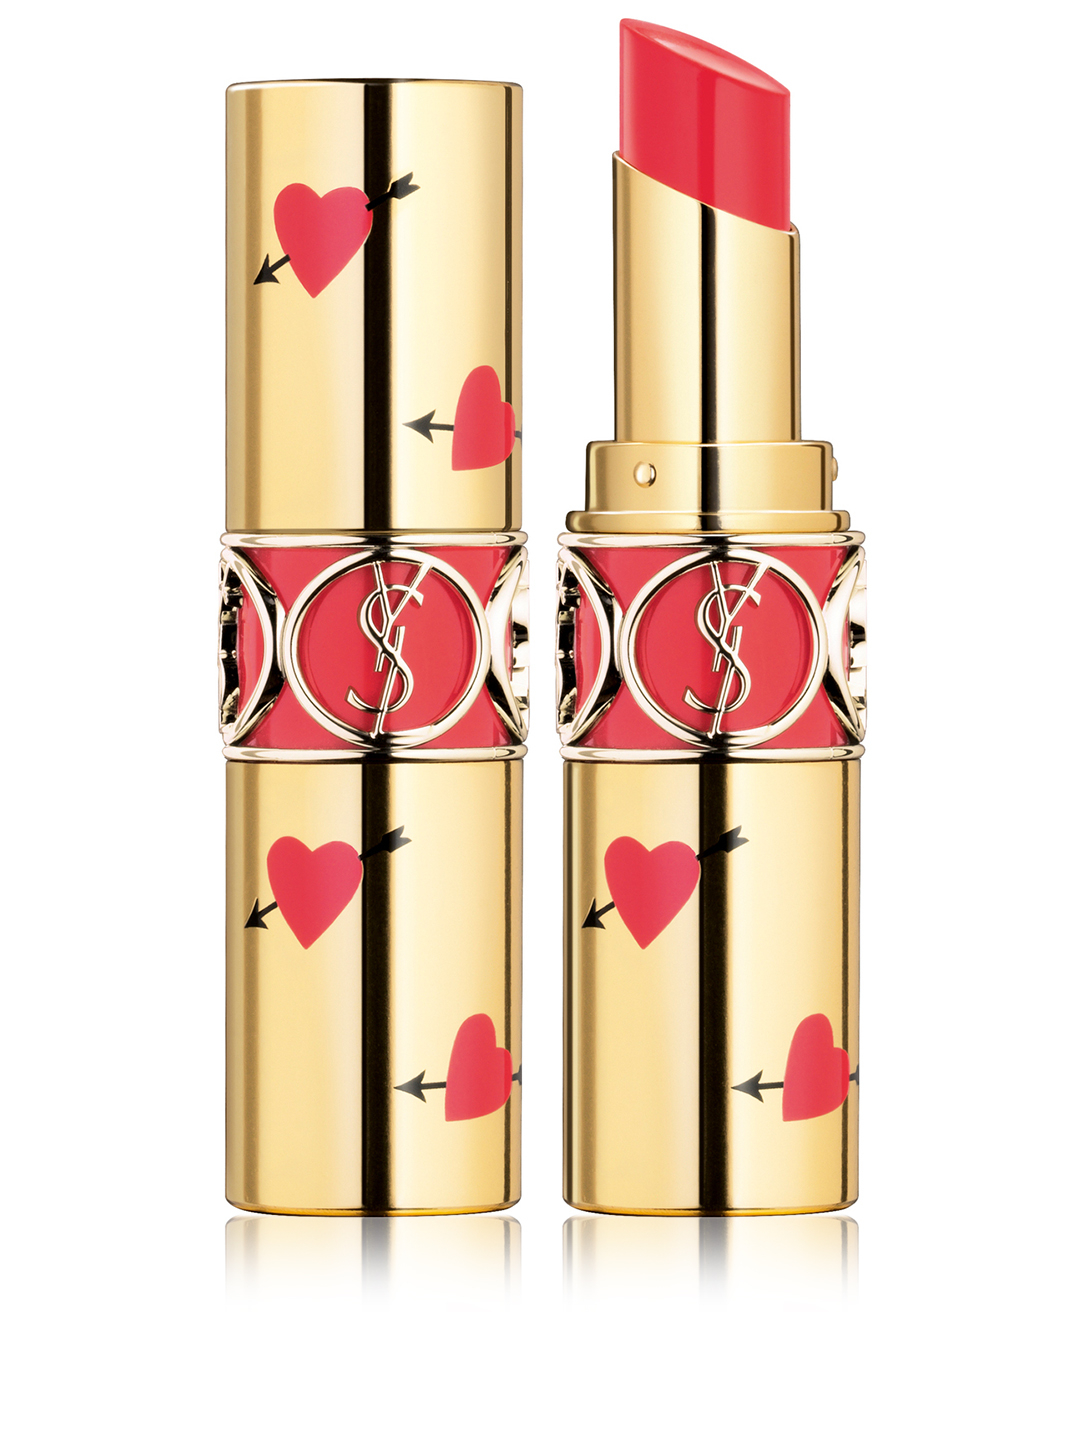 YVES SAINT LAURENT Rouge Volupté Shine Lipstick - Heart & Arrow Limited Edition Beauty Orange